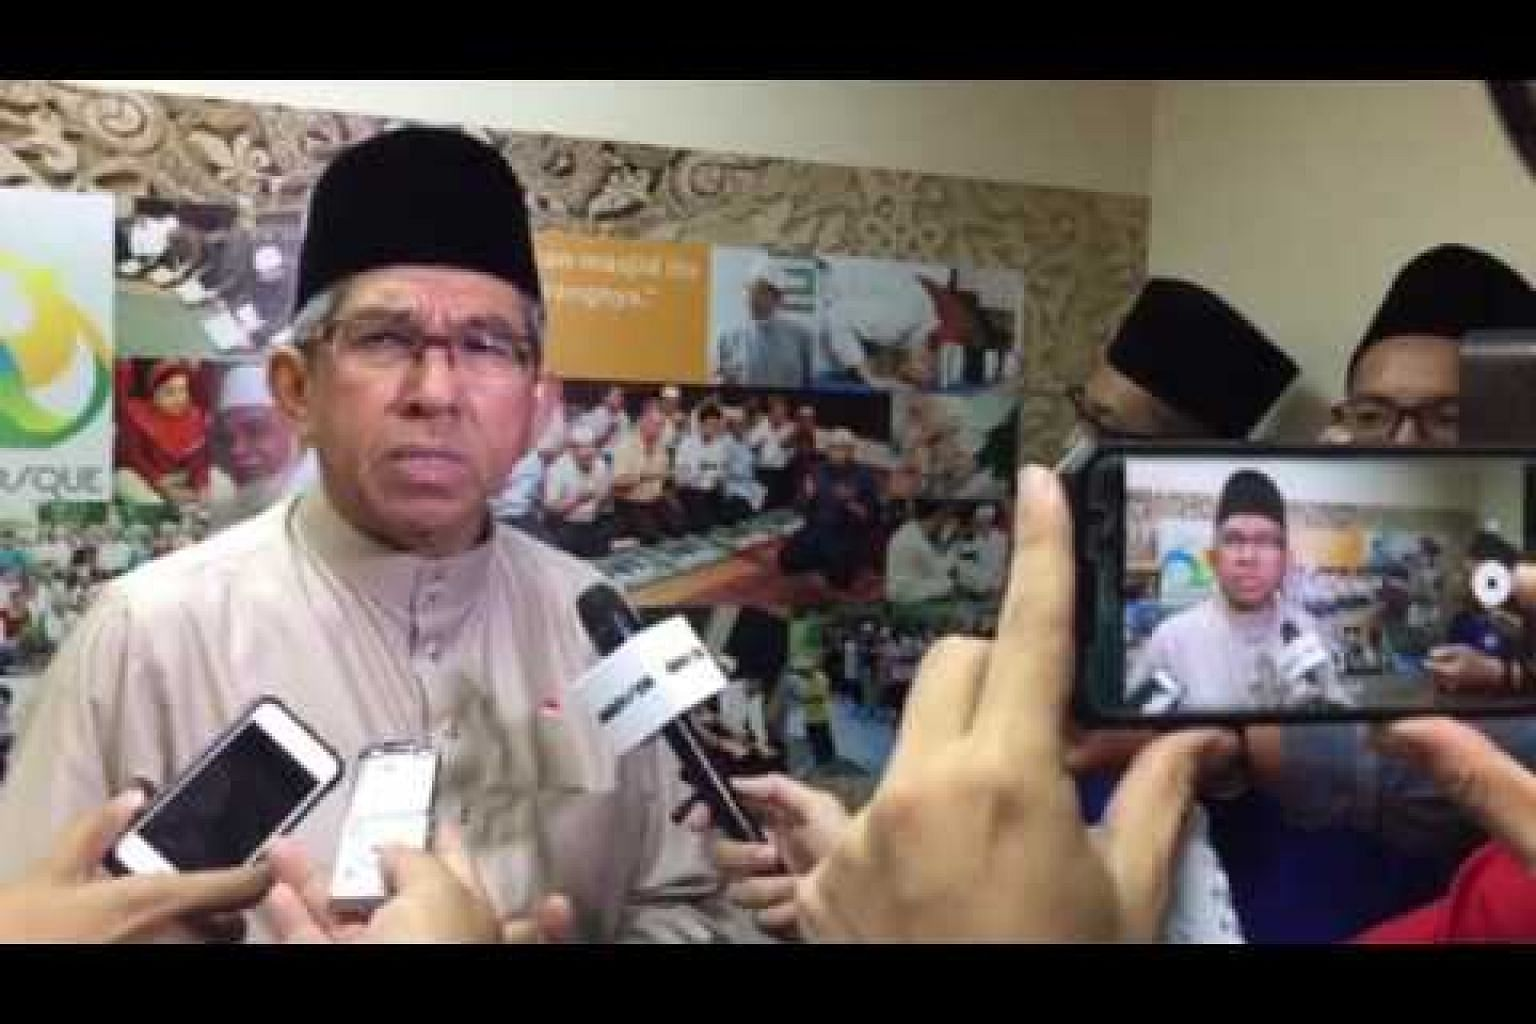 Minister-in-charge of Muslim Affairs Dr Yaacob Ibrahim talks about Islamophobia